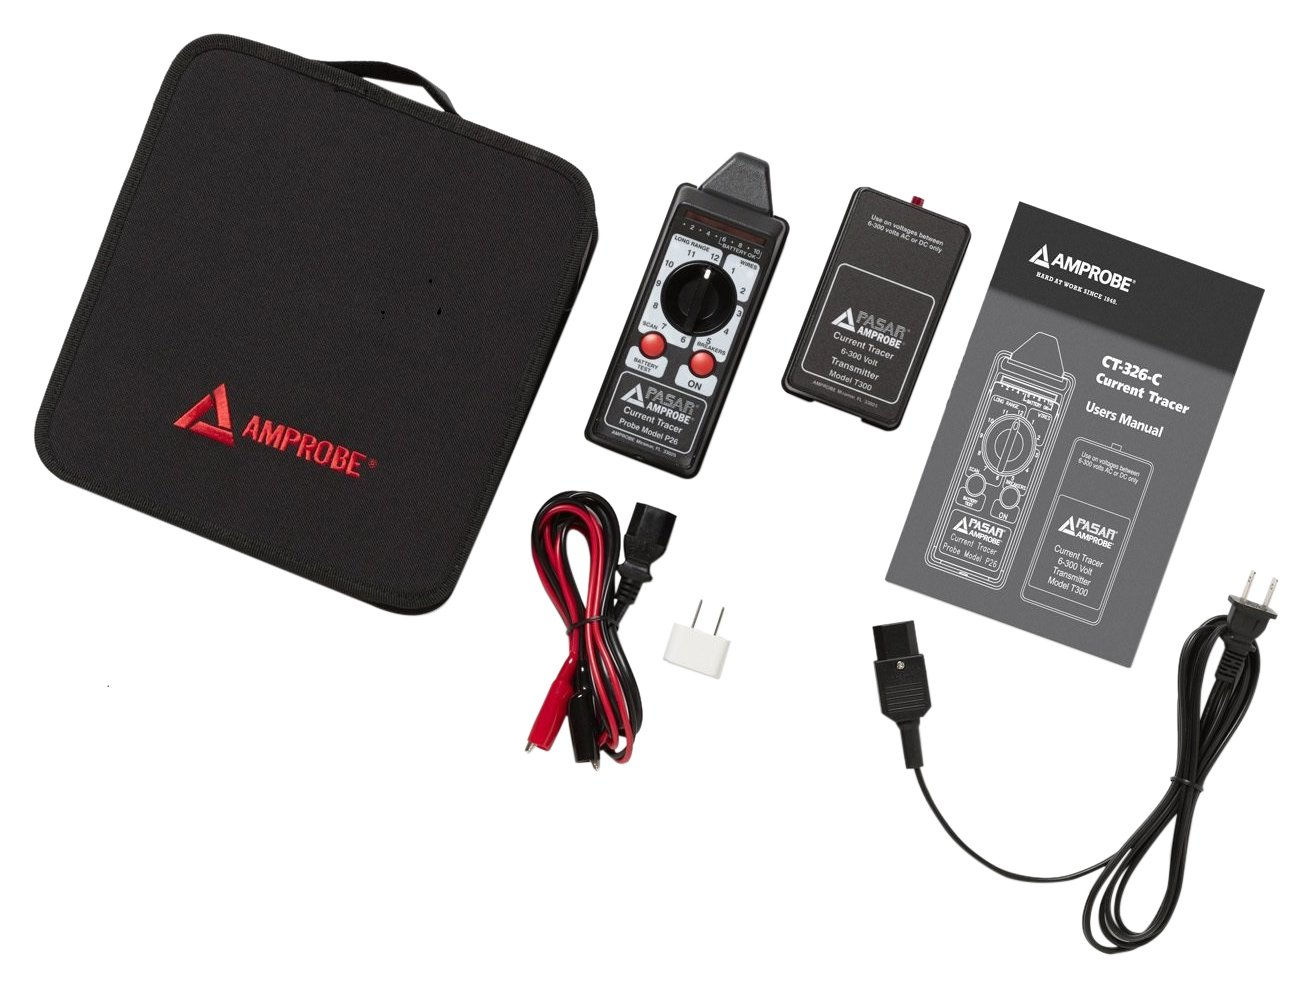 Amprobe Ct 326 C Current Tracer Kit Industrial Scientific Electrical Wiring